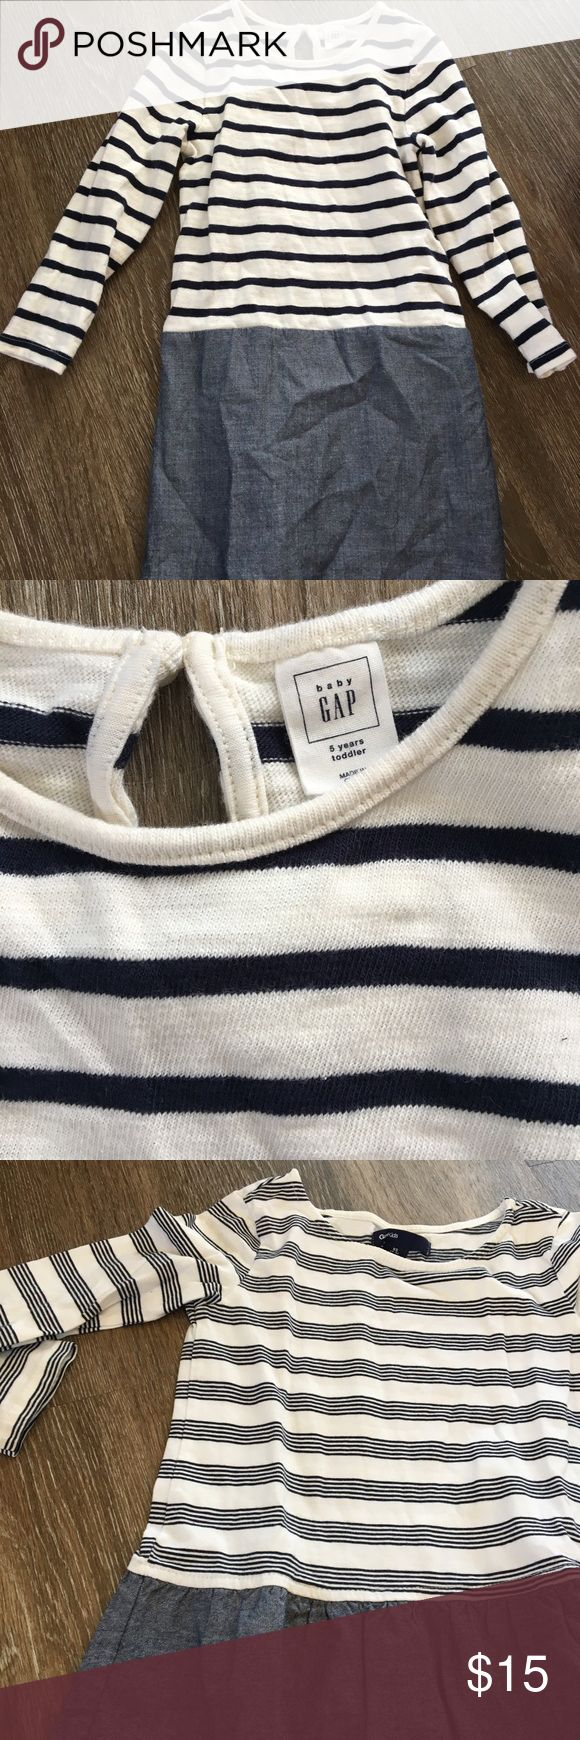 Adorable girls Gap dress! This is darling.  Girls Gap dress.  Navy and white stripes with light denim at bottom.  Great condition.  Not worn much. GAP Dresses Casual